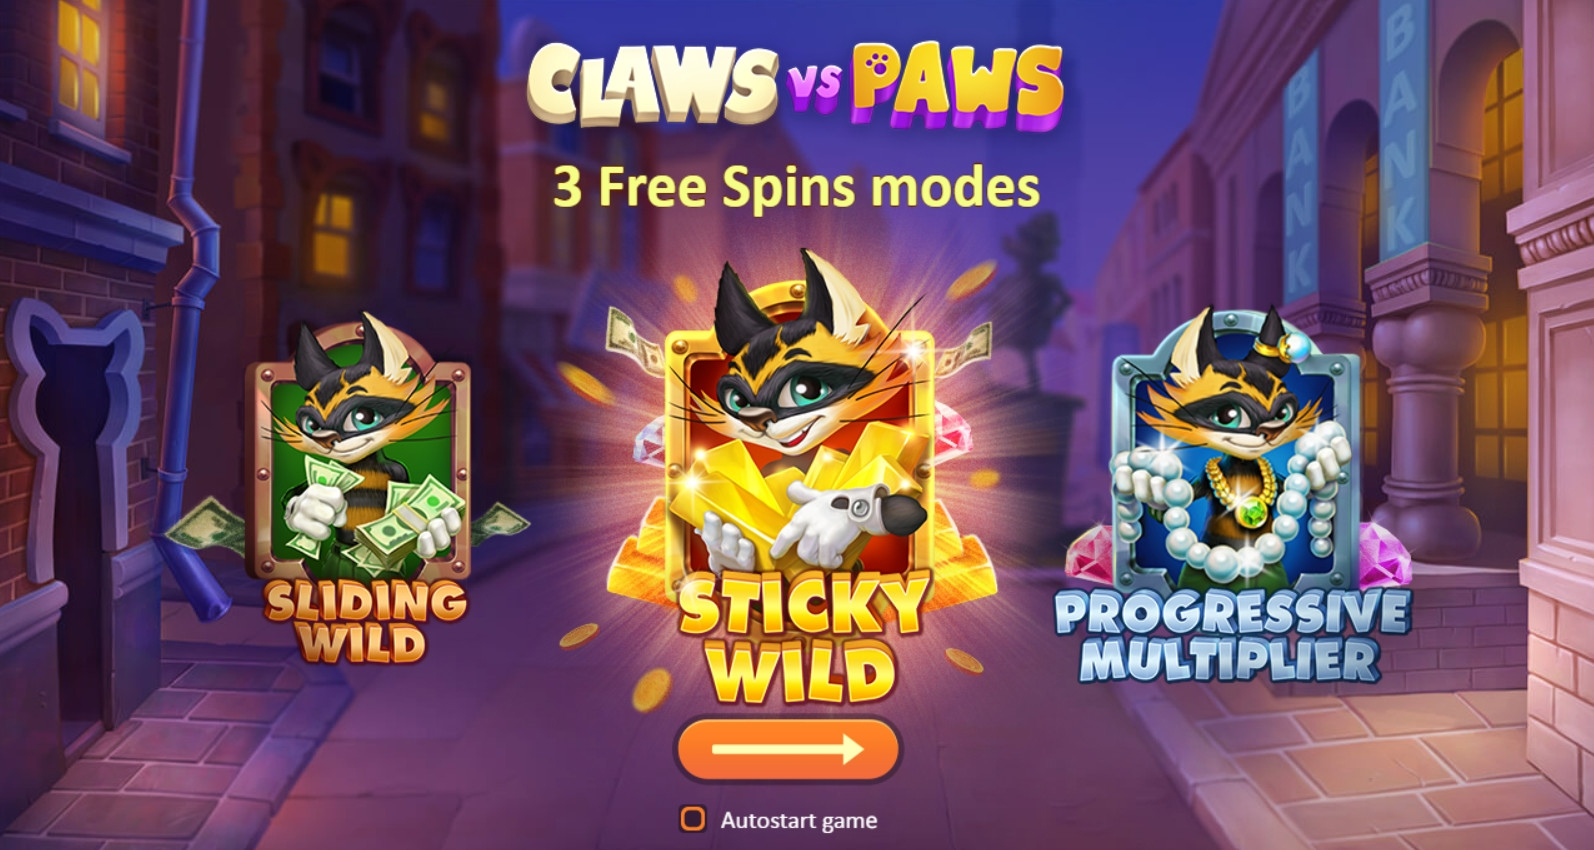 Claws vs Paws video slot